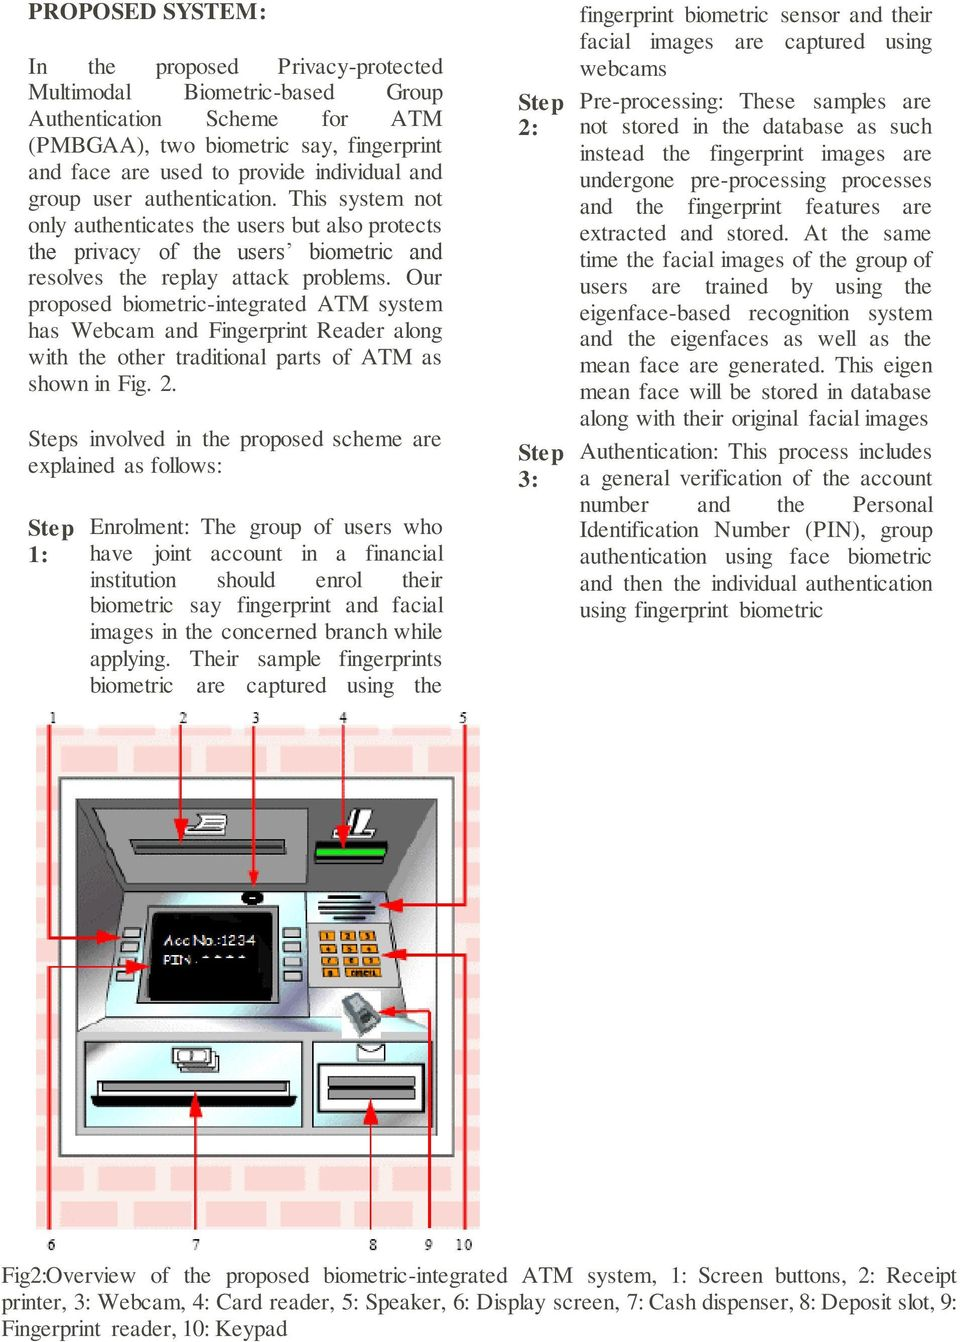 Our proposed biometric-integrated ATM system has Webcam and Fingerprint Reader along with the other traditional parts of ATM as shown in Fig. 2.